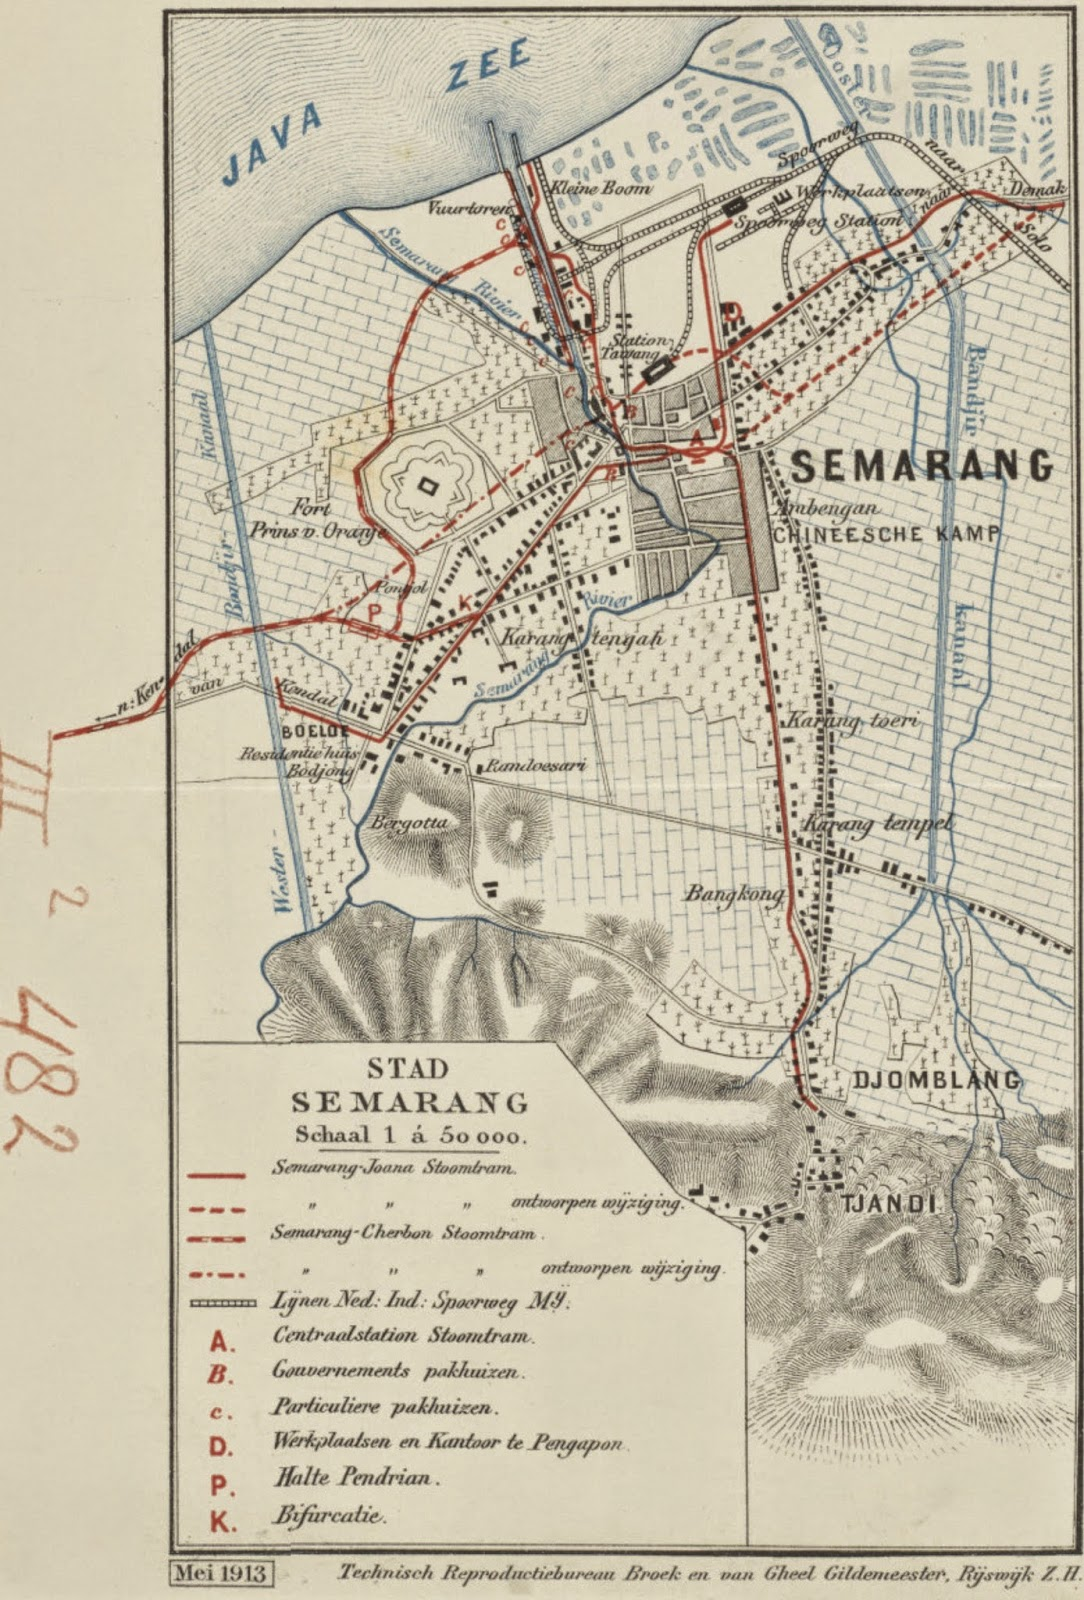 East Java Indonesia 1920 Map To Make One Feel At Ease And Energetic Pasuruan & Mount Bromo Malang & Environs Tosari